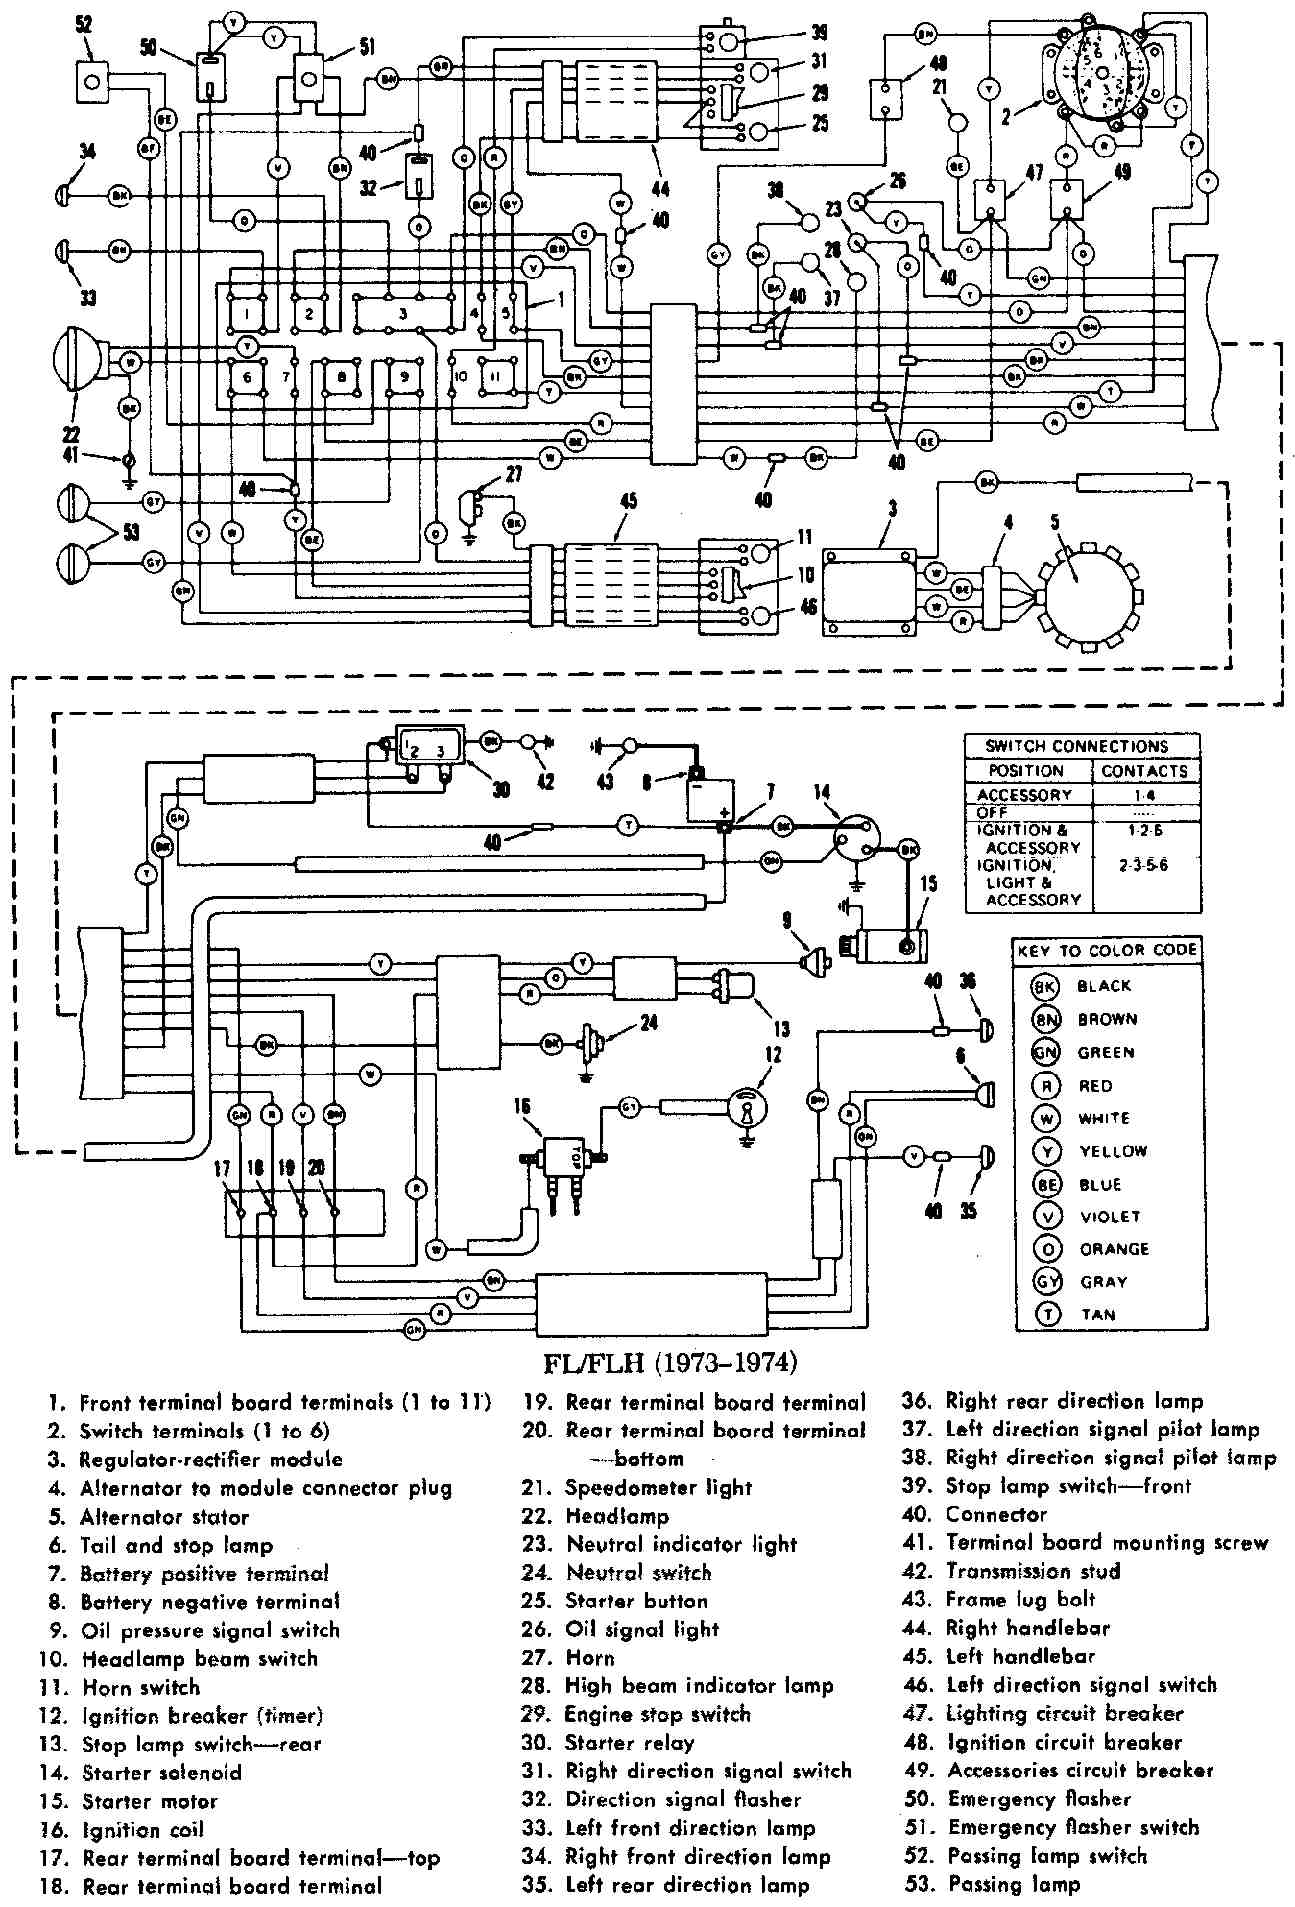 Harley Starter Relay Wiring Diagram 1974 House Handlebar Davidson Engine Circuit Symbols U2022 Rh Veturecapitaltrust Co Chopper Softail